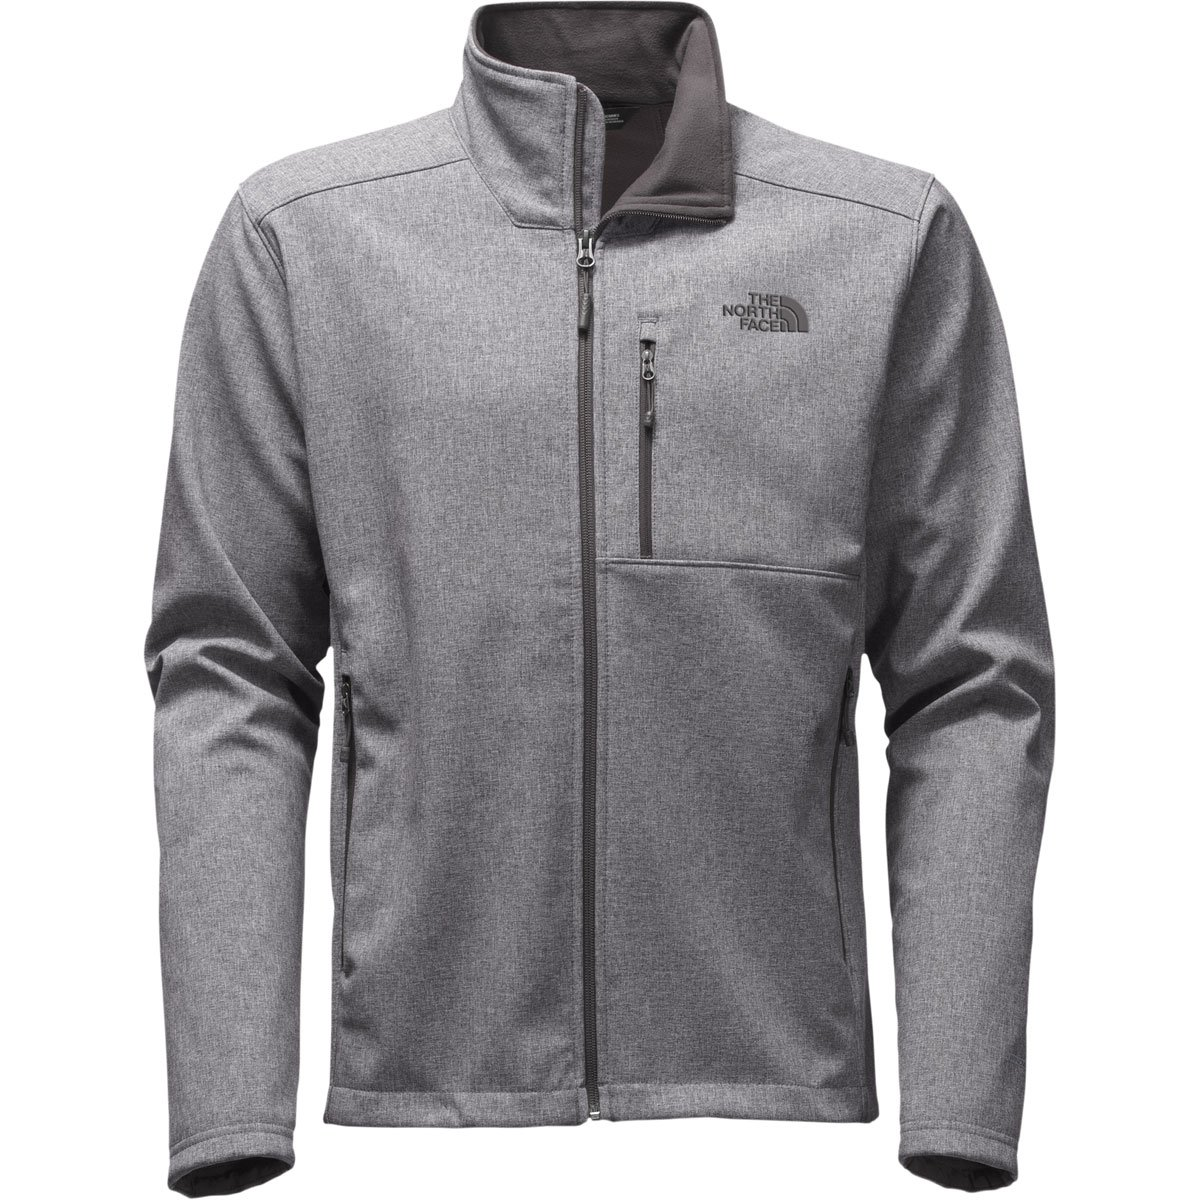 The North Face Men's  Apex Bionic 2 Jacket - Tall, X-Large, TNF Medium Grey Heather/TNF Medium Grey Heather